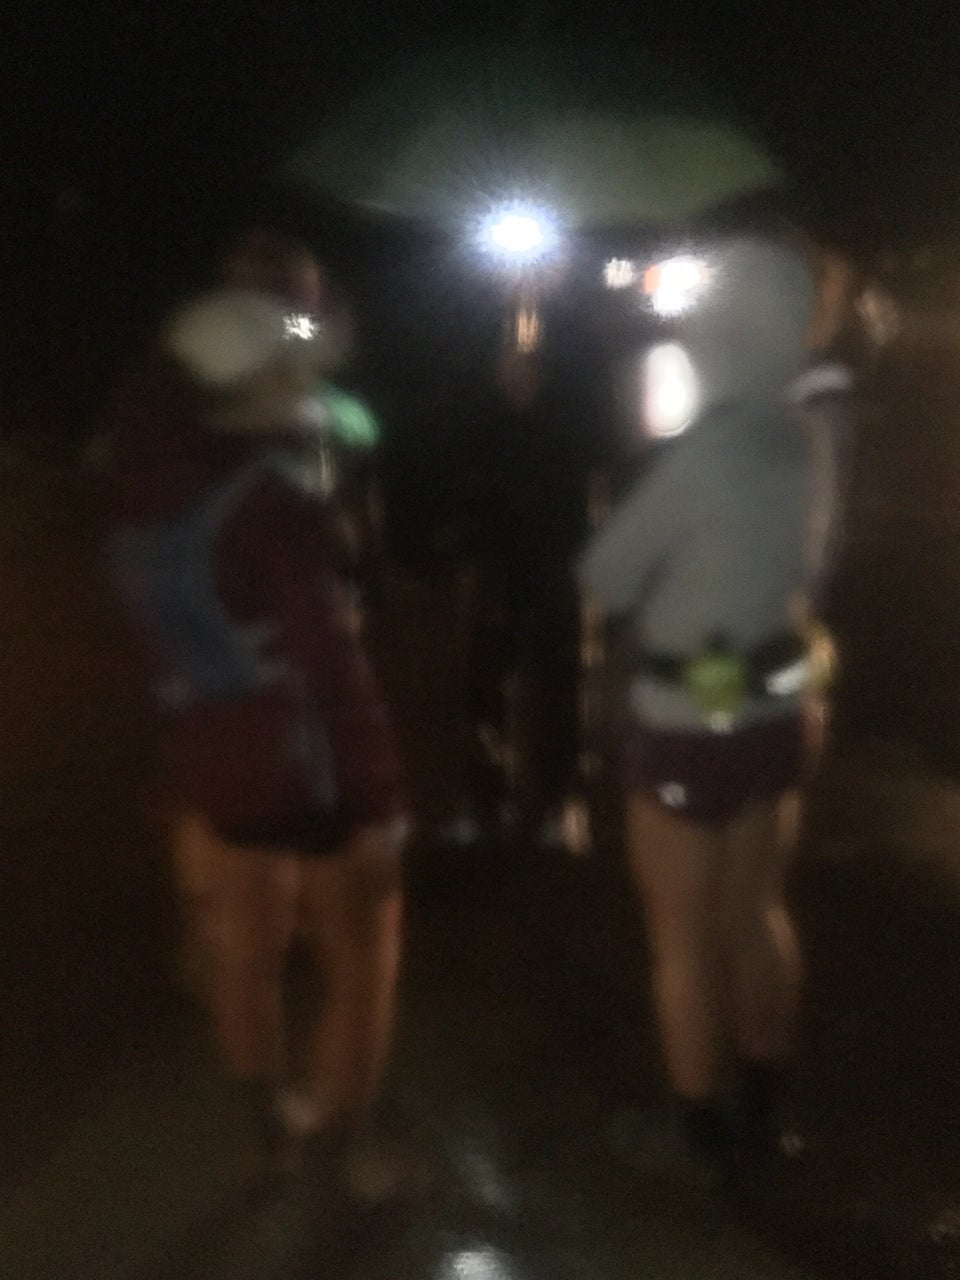 Blurry image of a few runners in rain gear and shorts on both sides of Bryan wearing a lit headlamp holding a green umbrella.